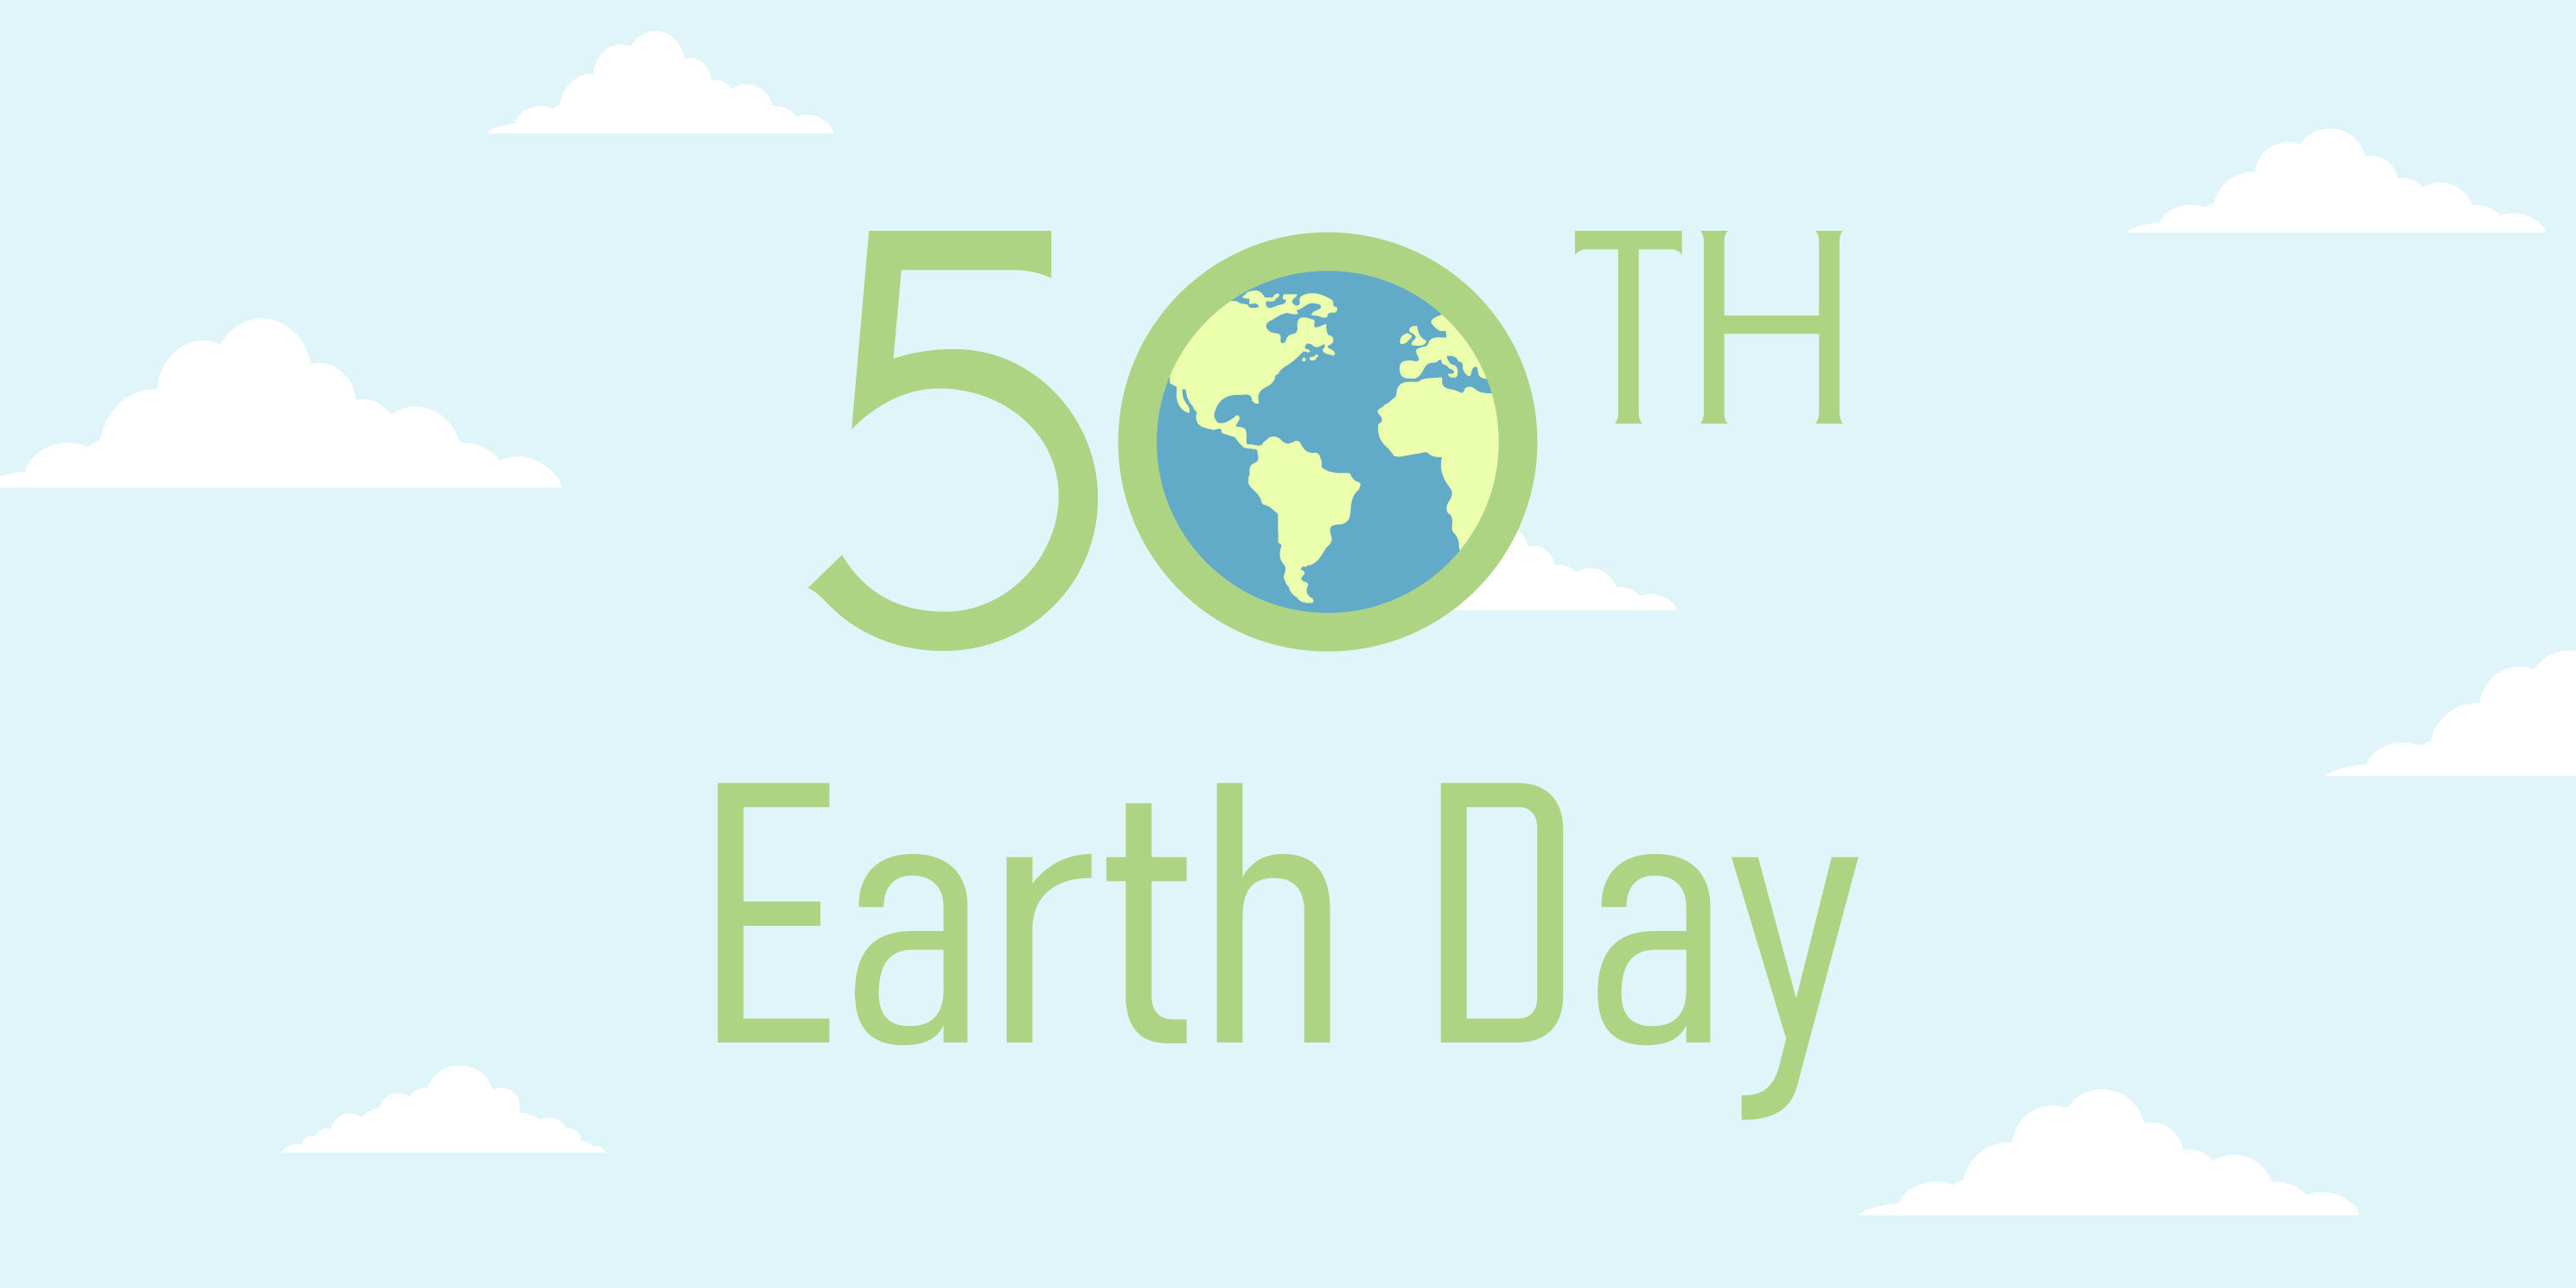 graphic advertisement for the 50th Anniversary of Earth Day